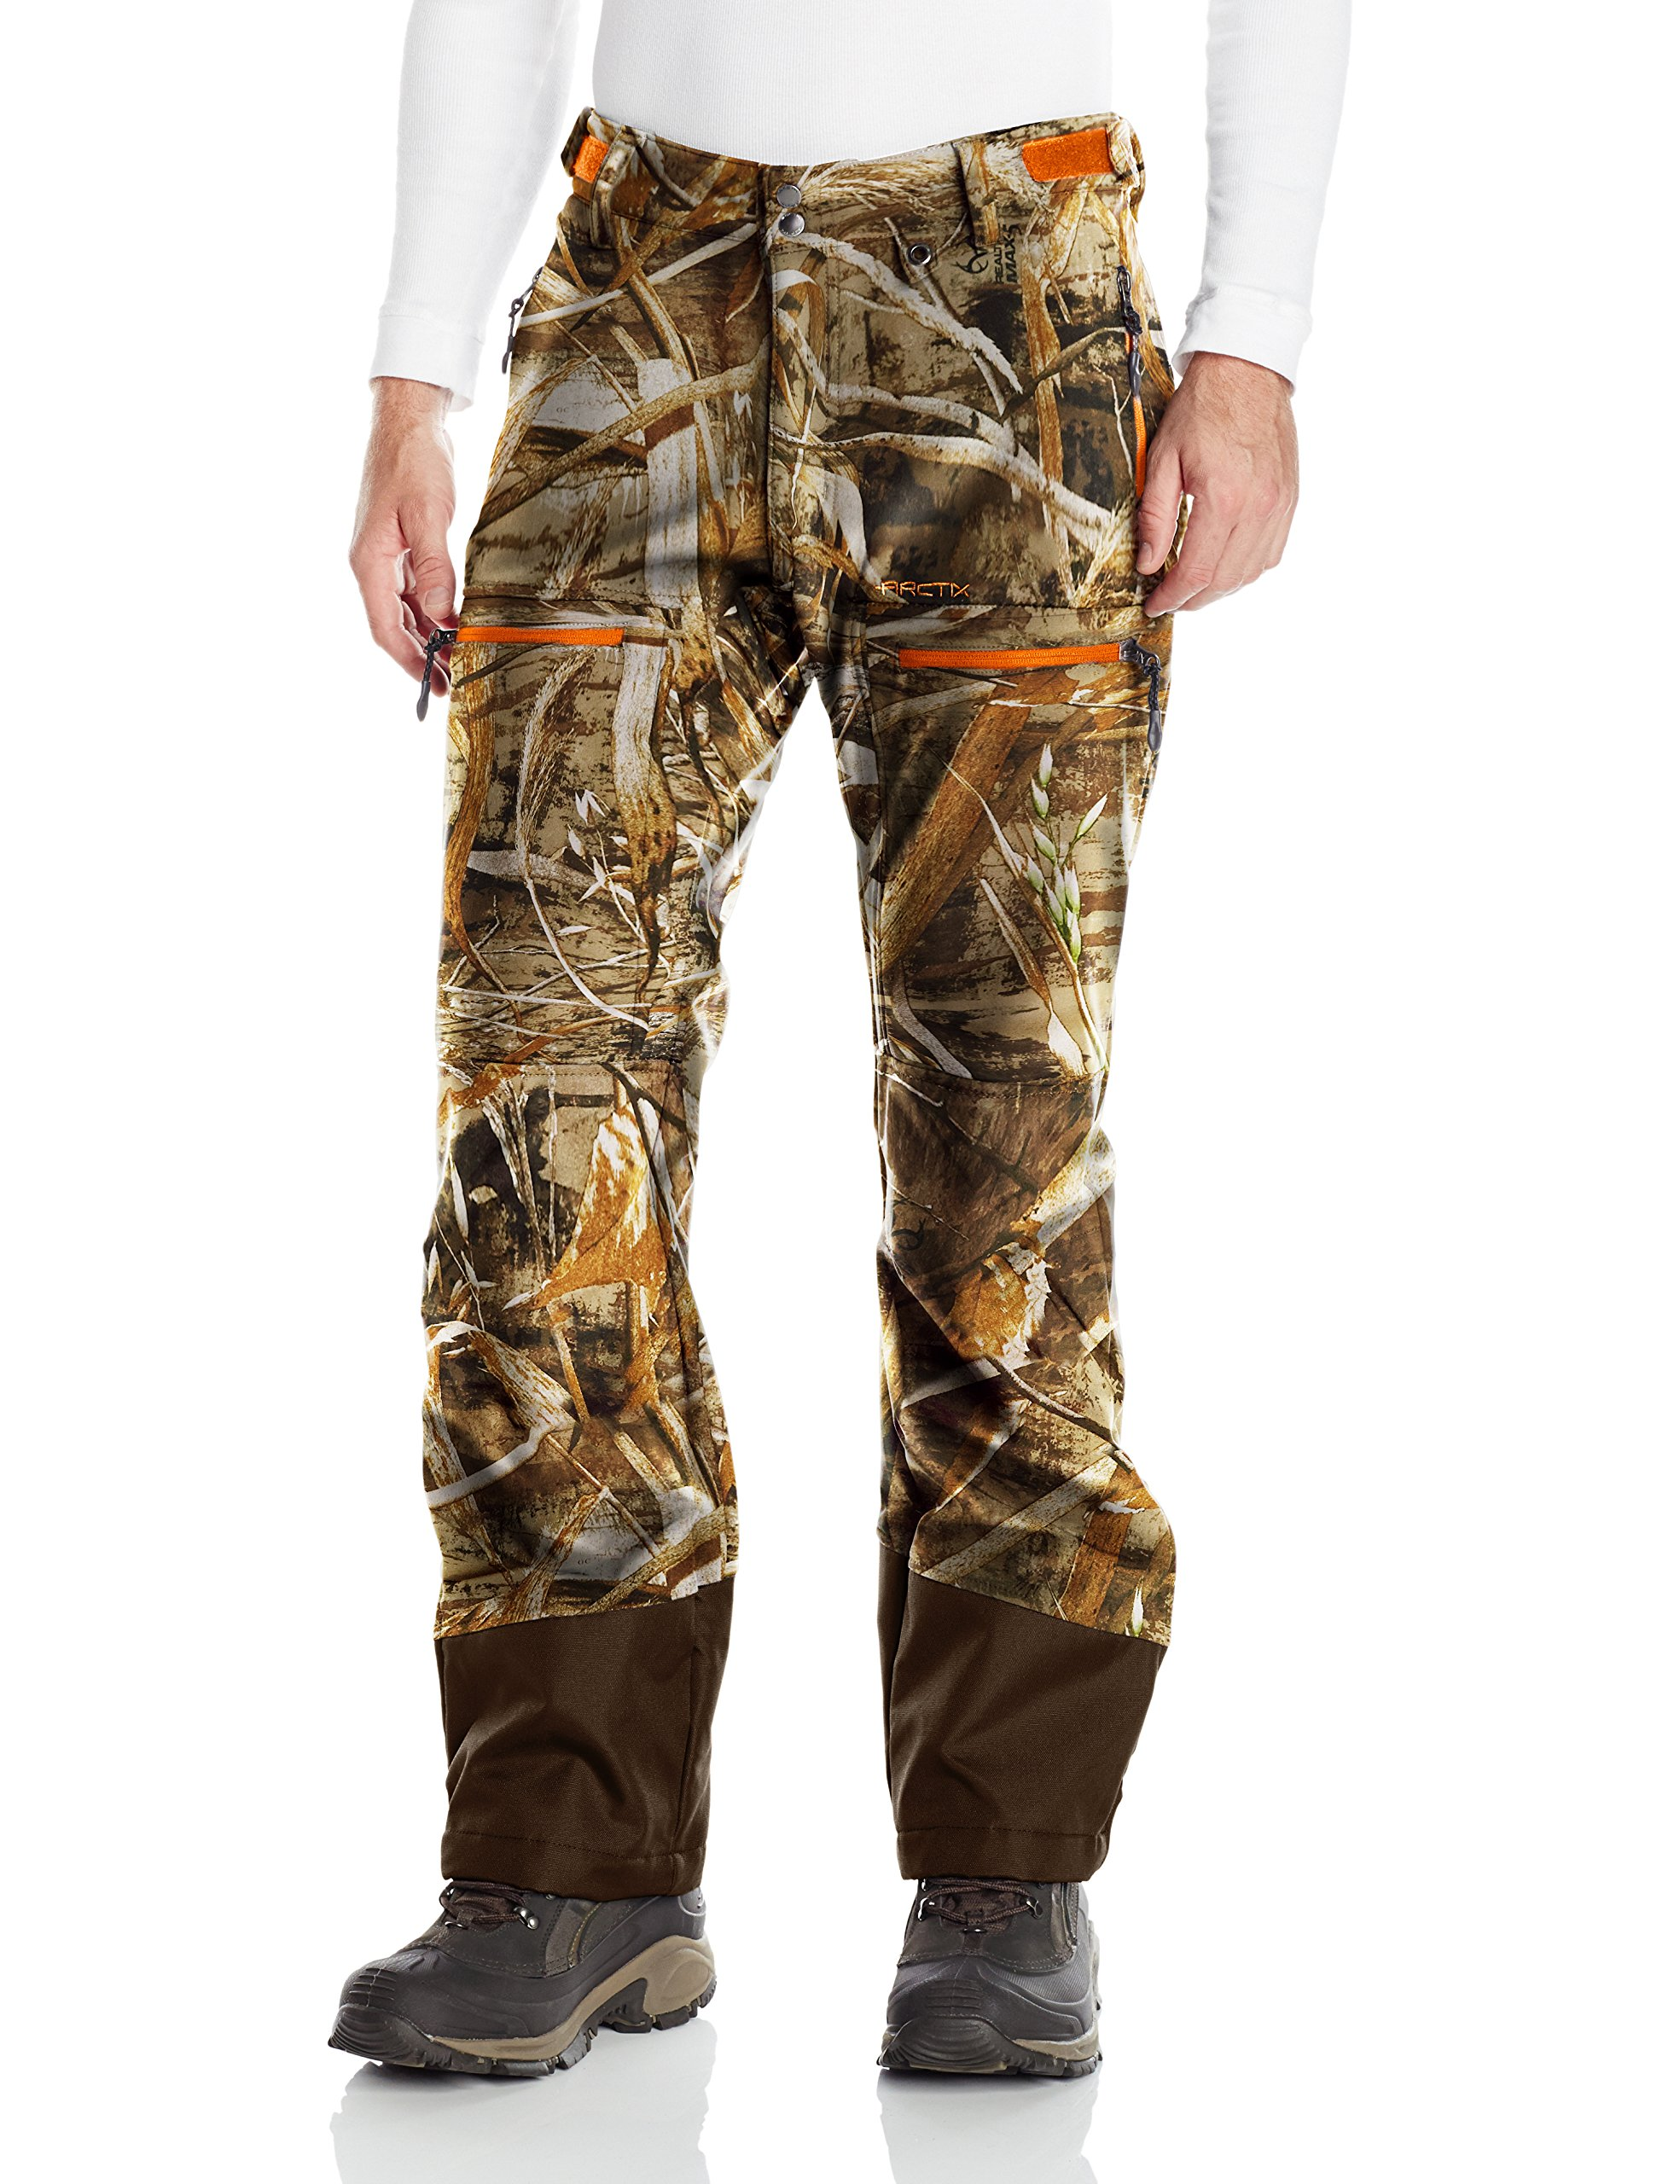 Arctix Men's Duke Vulcan Softshell Pants, Realtree Max-5 Camo, Large